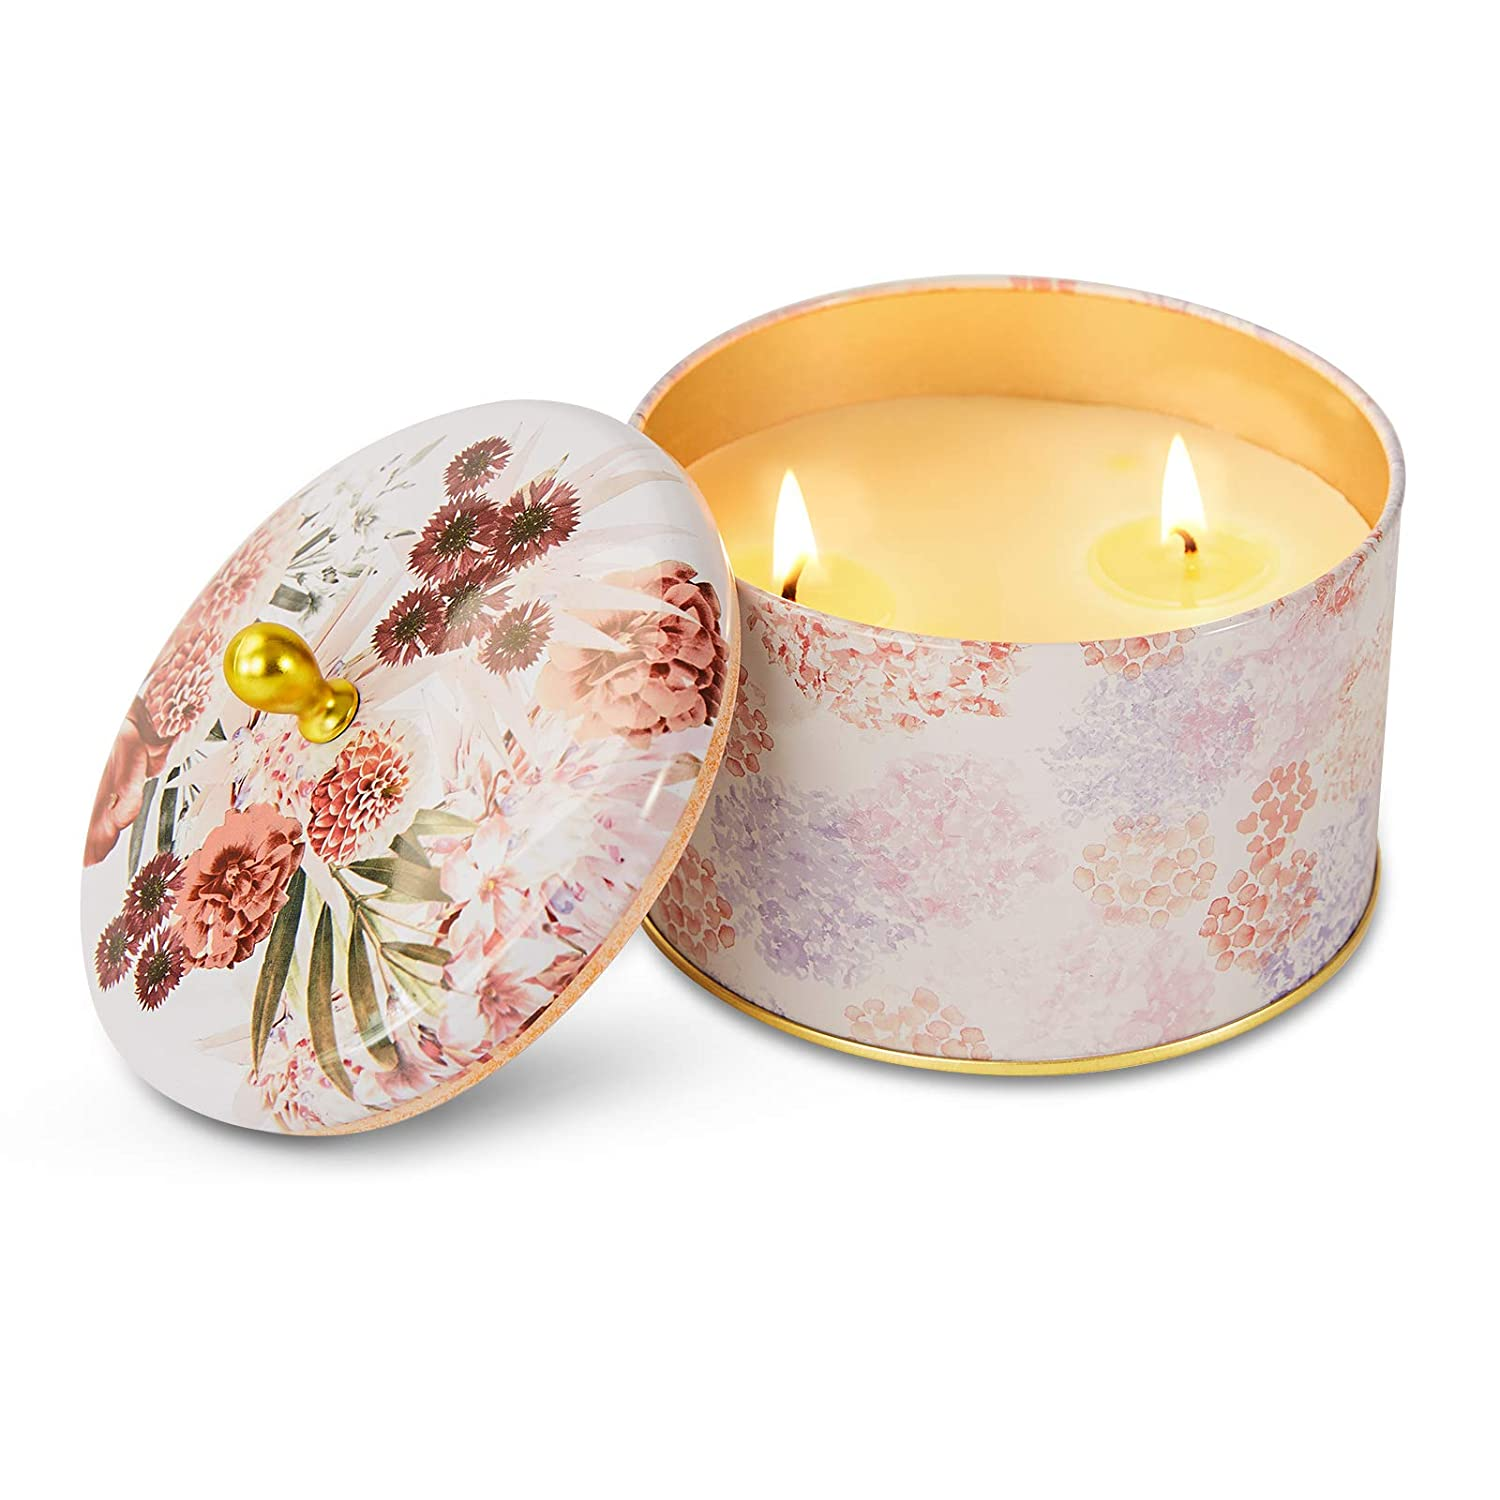 Round Aromatherapy Candles with Tin Can, Scented Candles Jar with 2 Wicks for Home, Meditation Candles with Daisy and Rose Fragrance for Calming and Stress Relieving